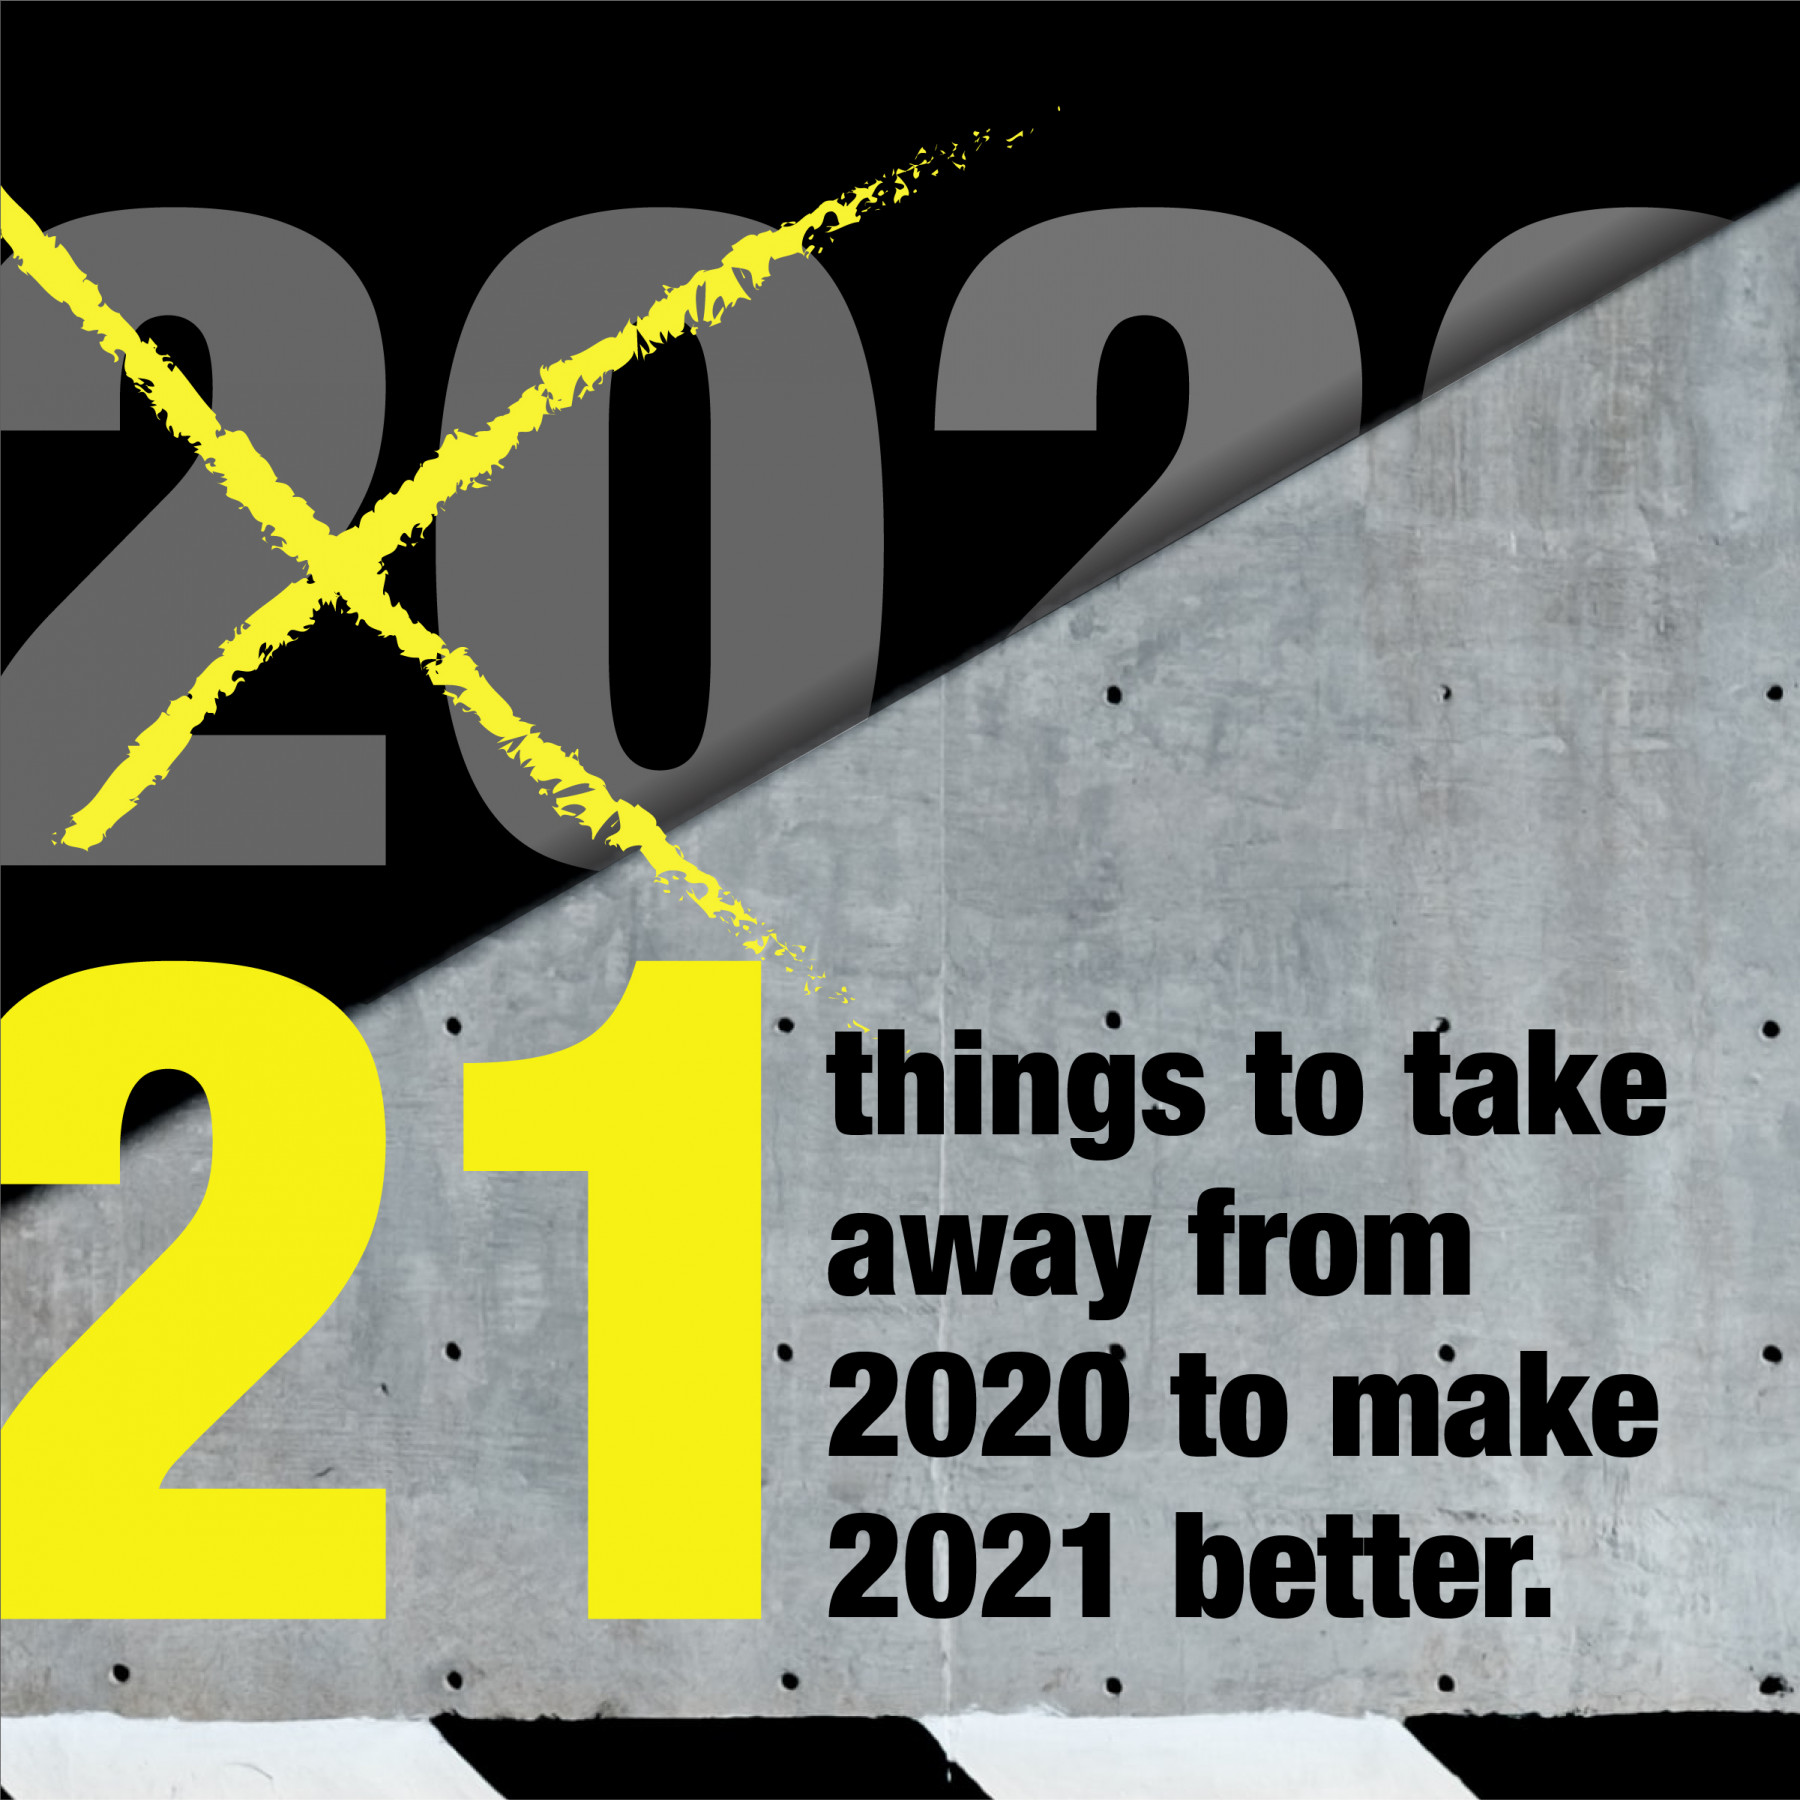 Featured Image: 21 Takeaways From 2020